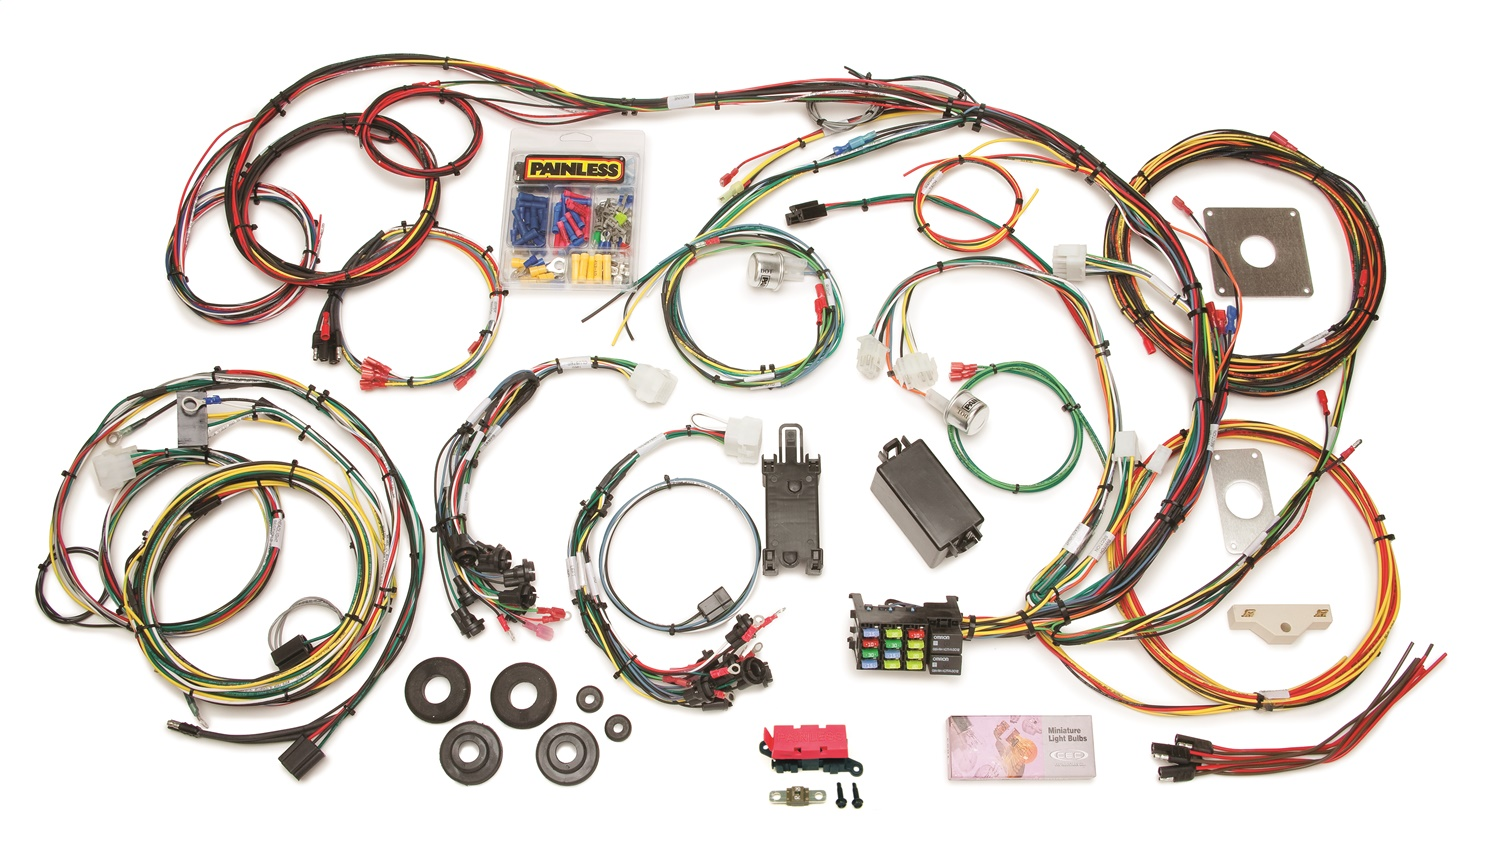 painless wiring harness 1993 mustang wiring diagrams bib painless wiring harness 1993 mustang chassi wiring library painless wiring 20120 22 circuit direct fit mustang